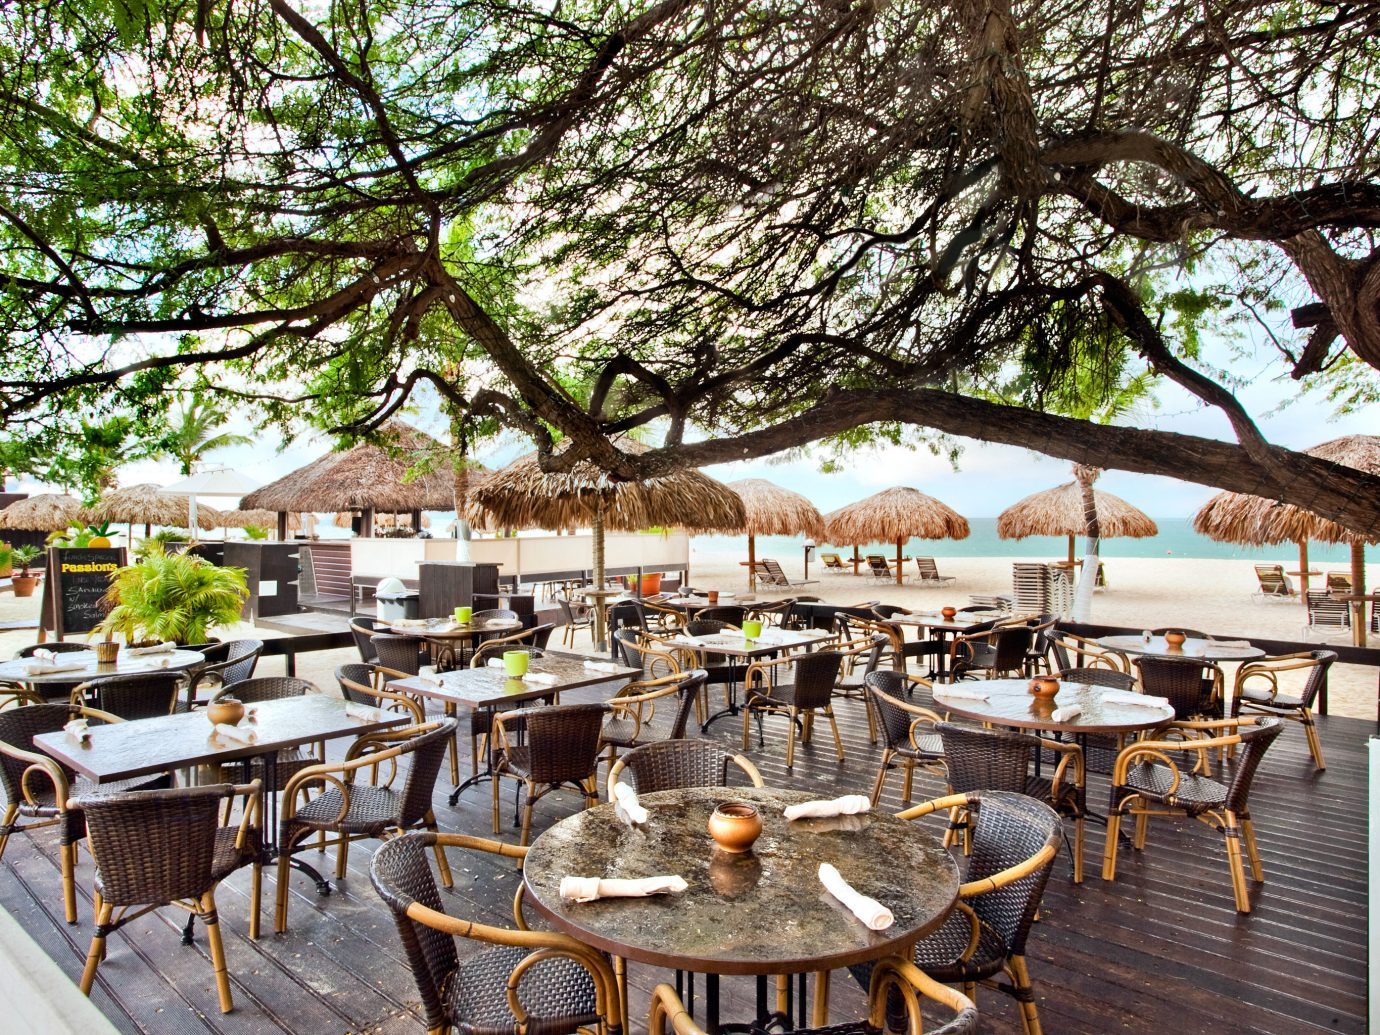 Dining Grounds Hotels Outdoors Patio Resort Romance tree outdoor chair restaurant estate flower meal lined several